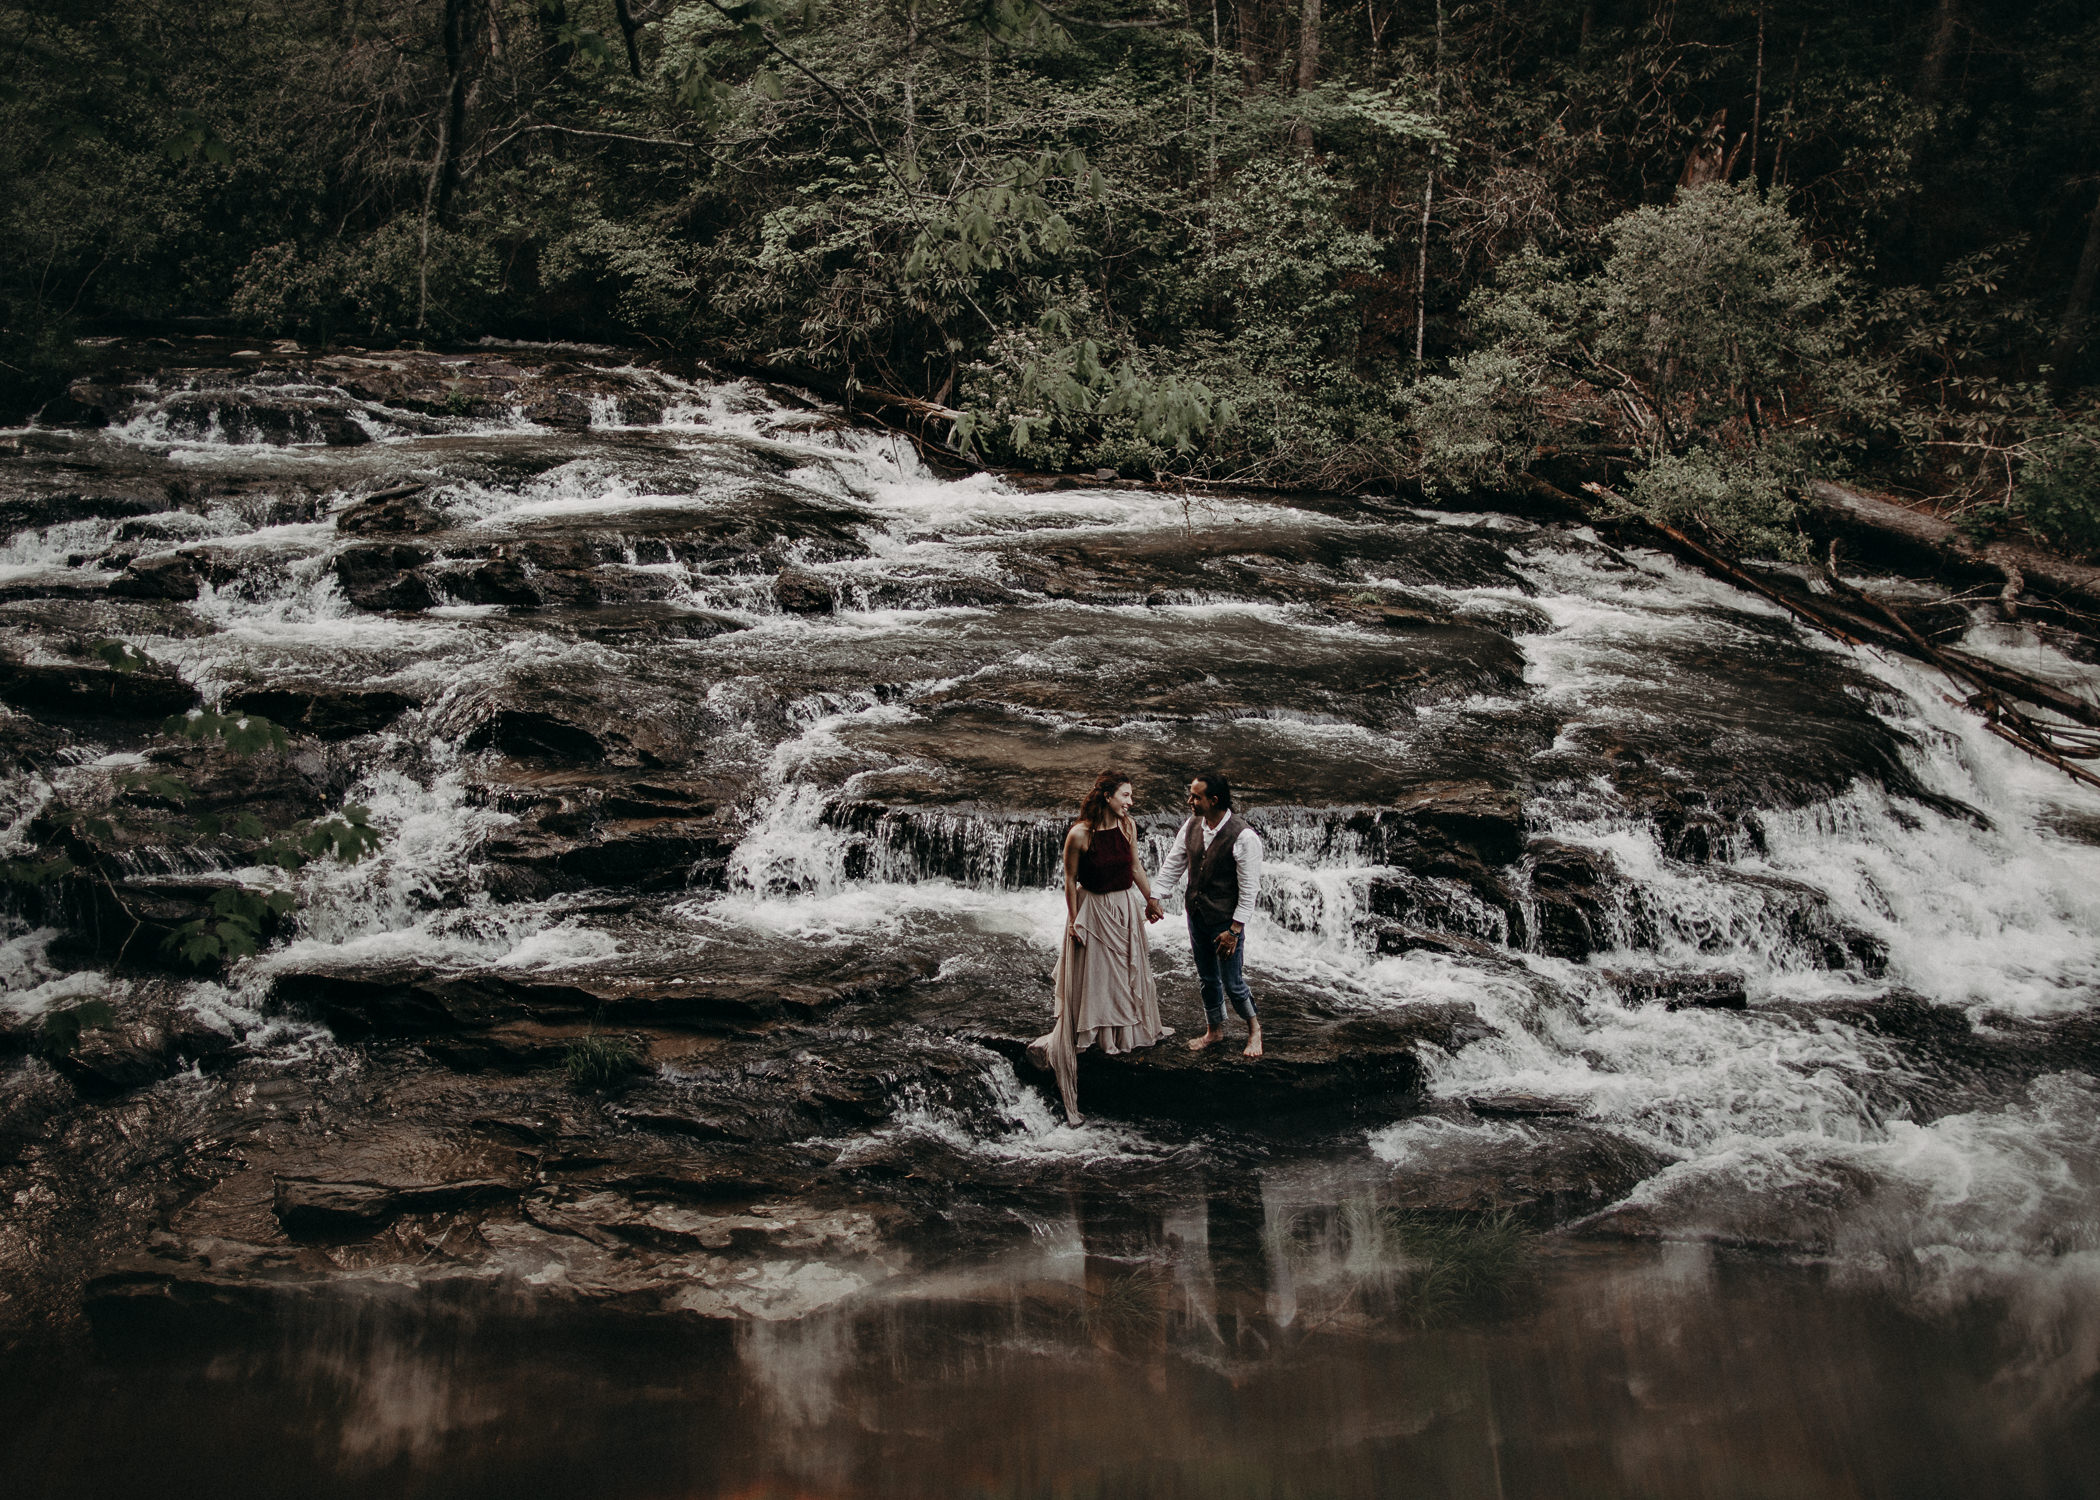 95- Forest wedding boho enchanched fairytale wedding atlanta - ga , intimate, elopement, nature, greens, good vibes. Aline Marin Photography .jpg